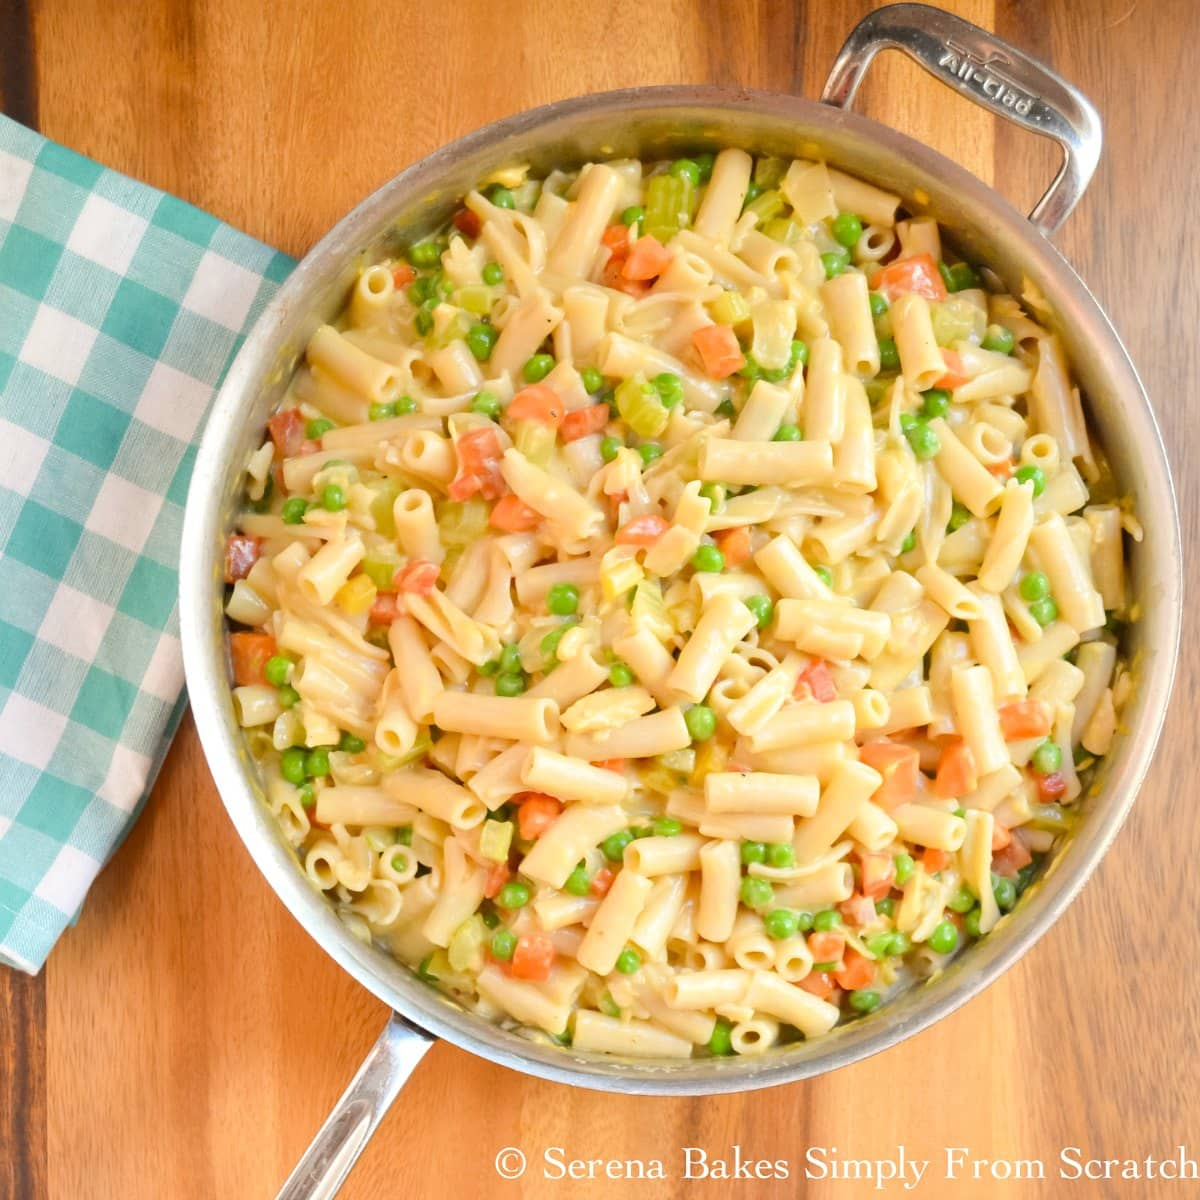 Homemade Cheese Tuna Helper Recipe with a gluten free option is easy to make.